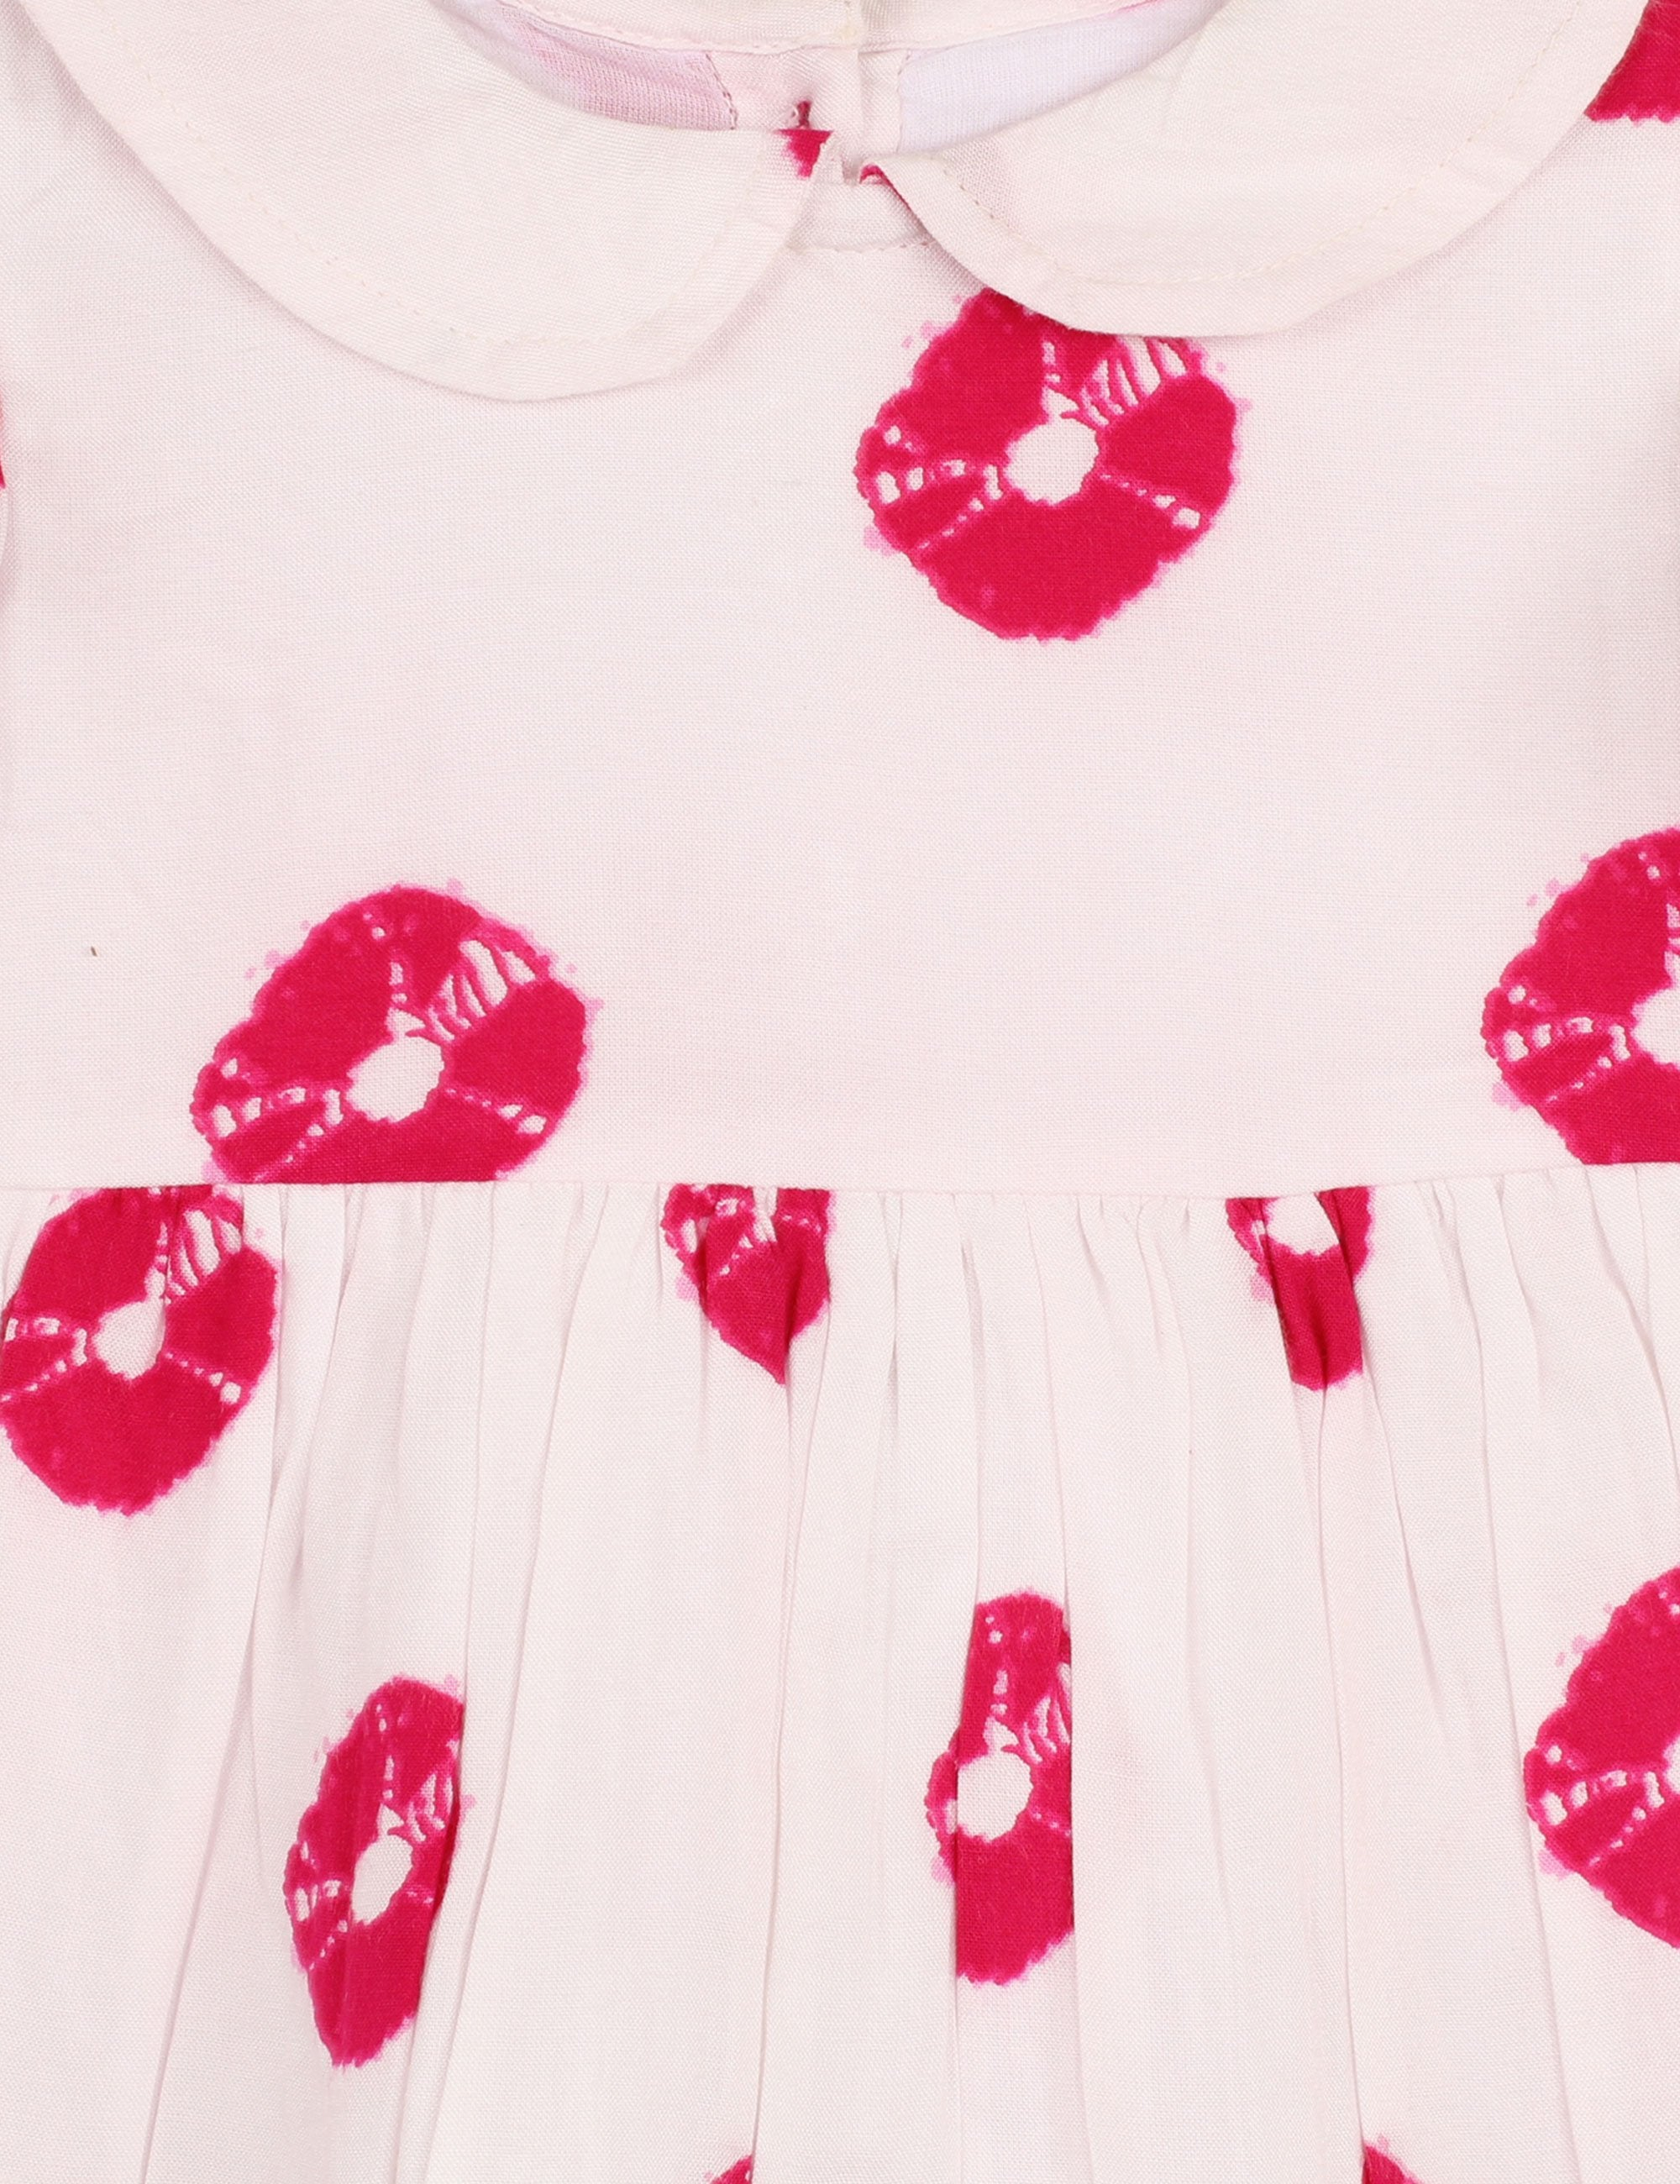 Tie Dye Print Dress in Pink Colour for Girls